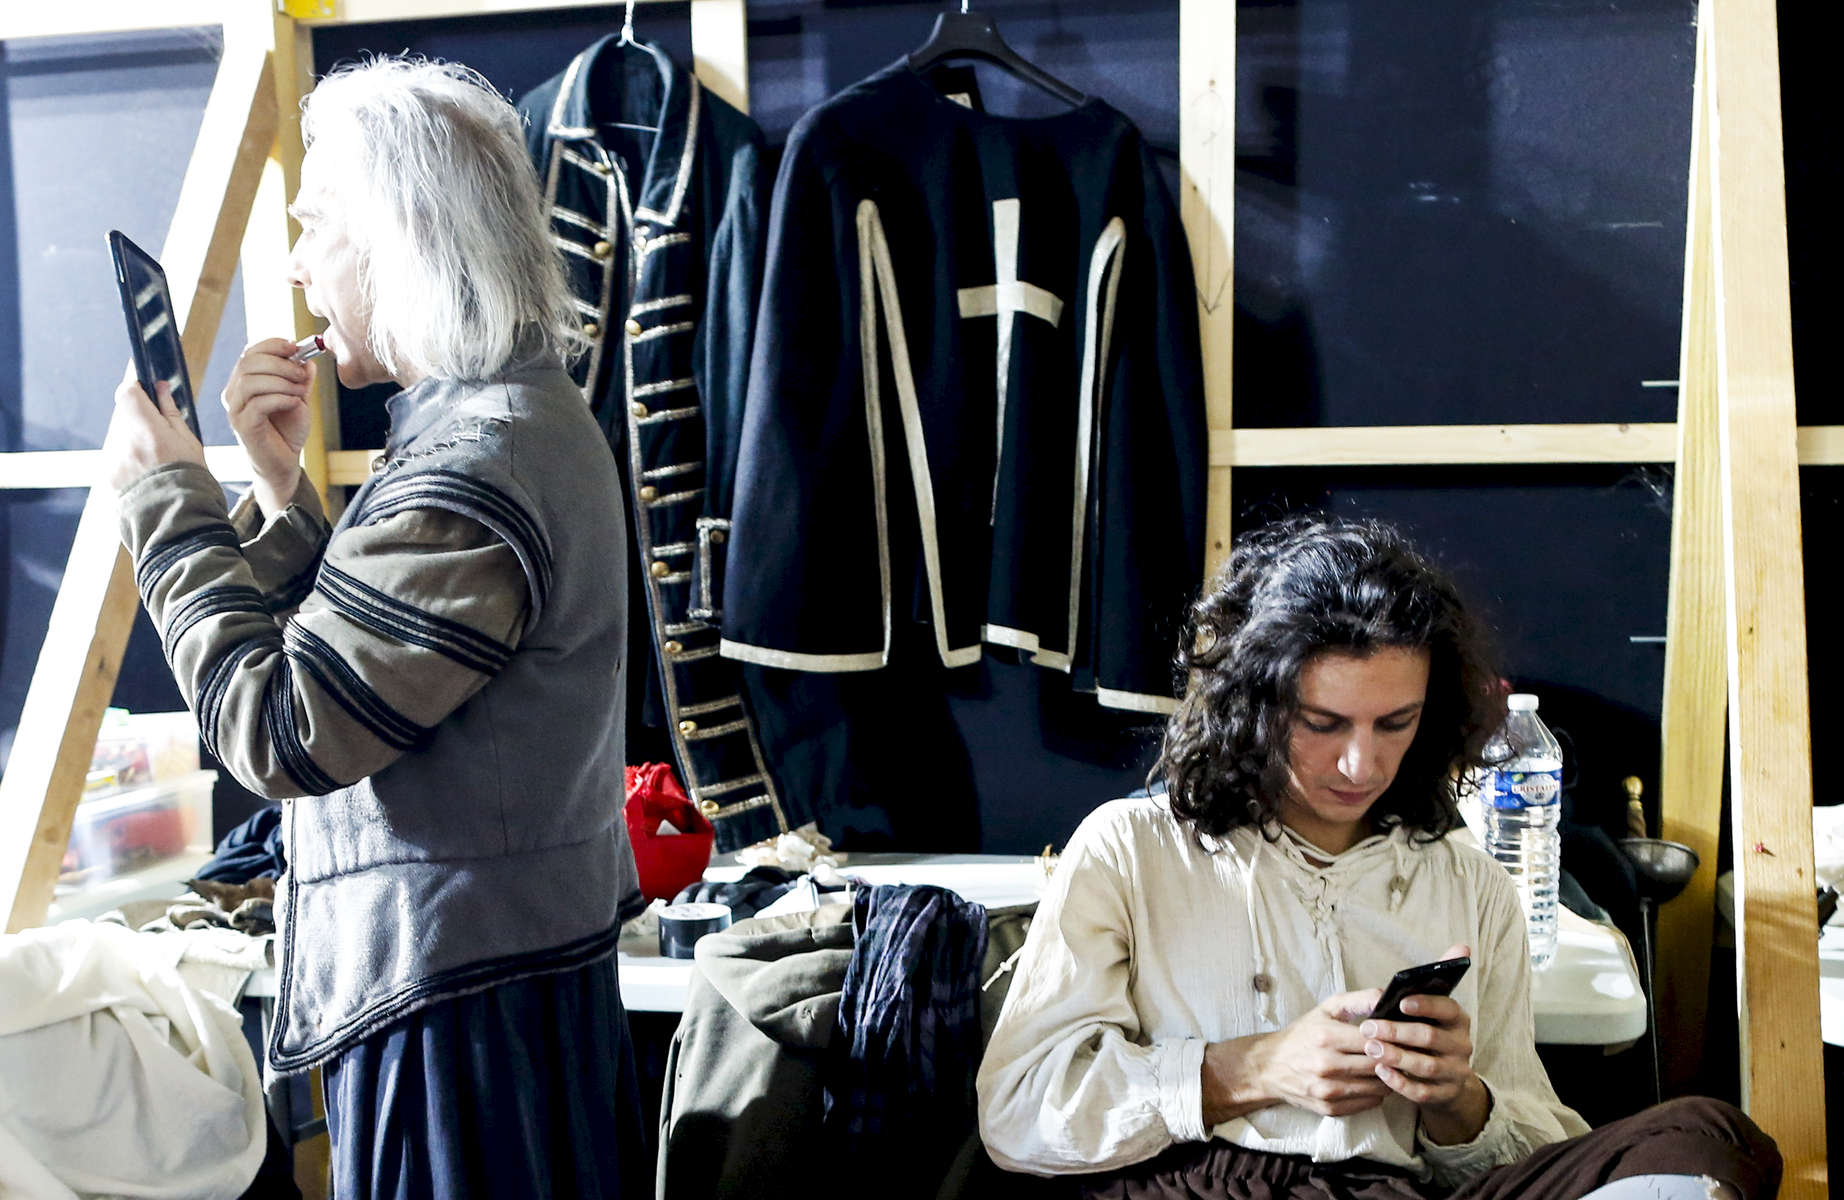 Didier Le Gal and Lorenzo Bello are getting ready backstage before a performance.